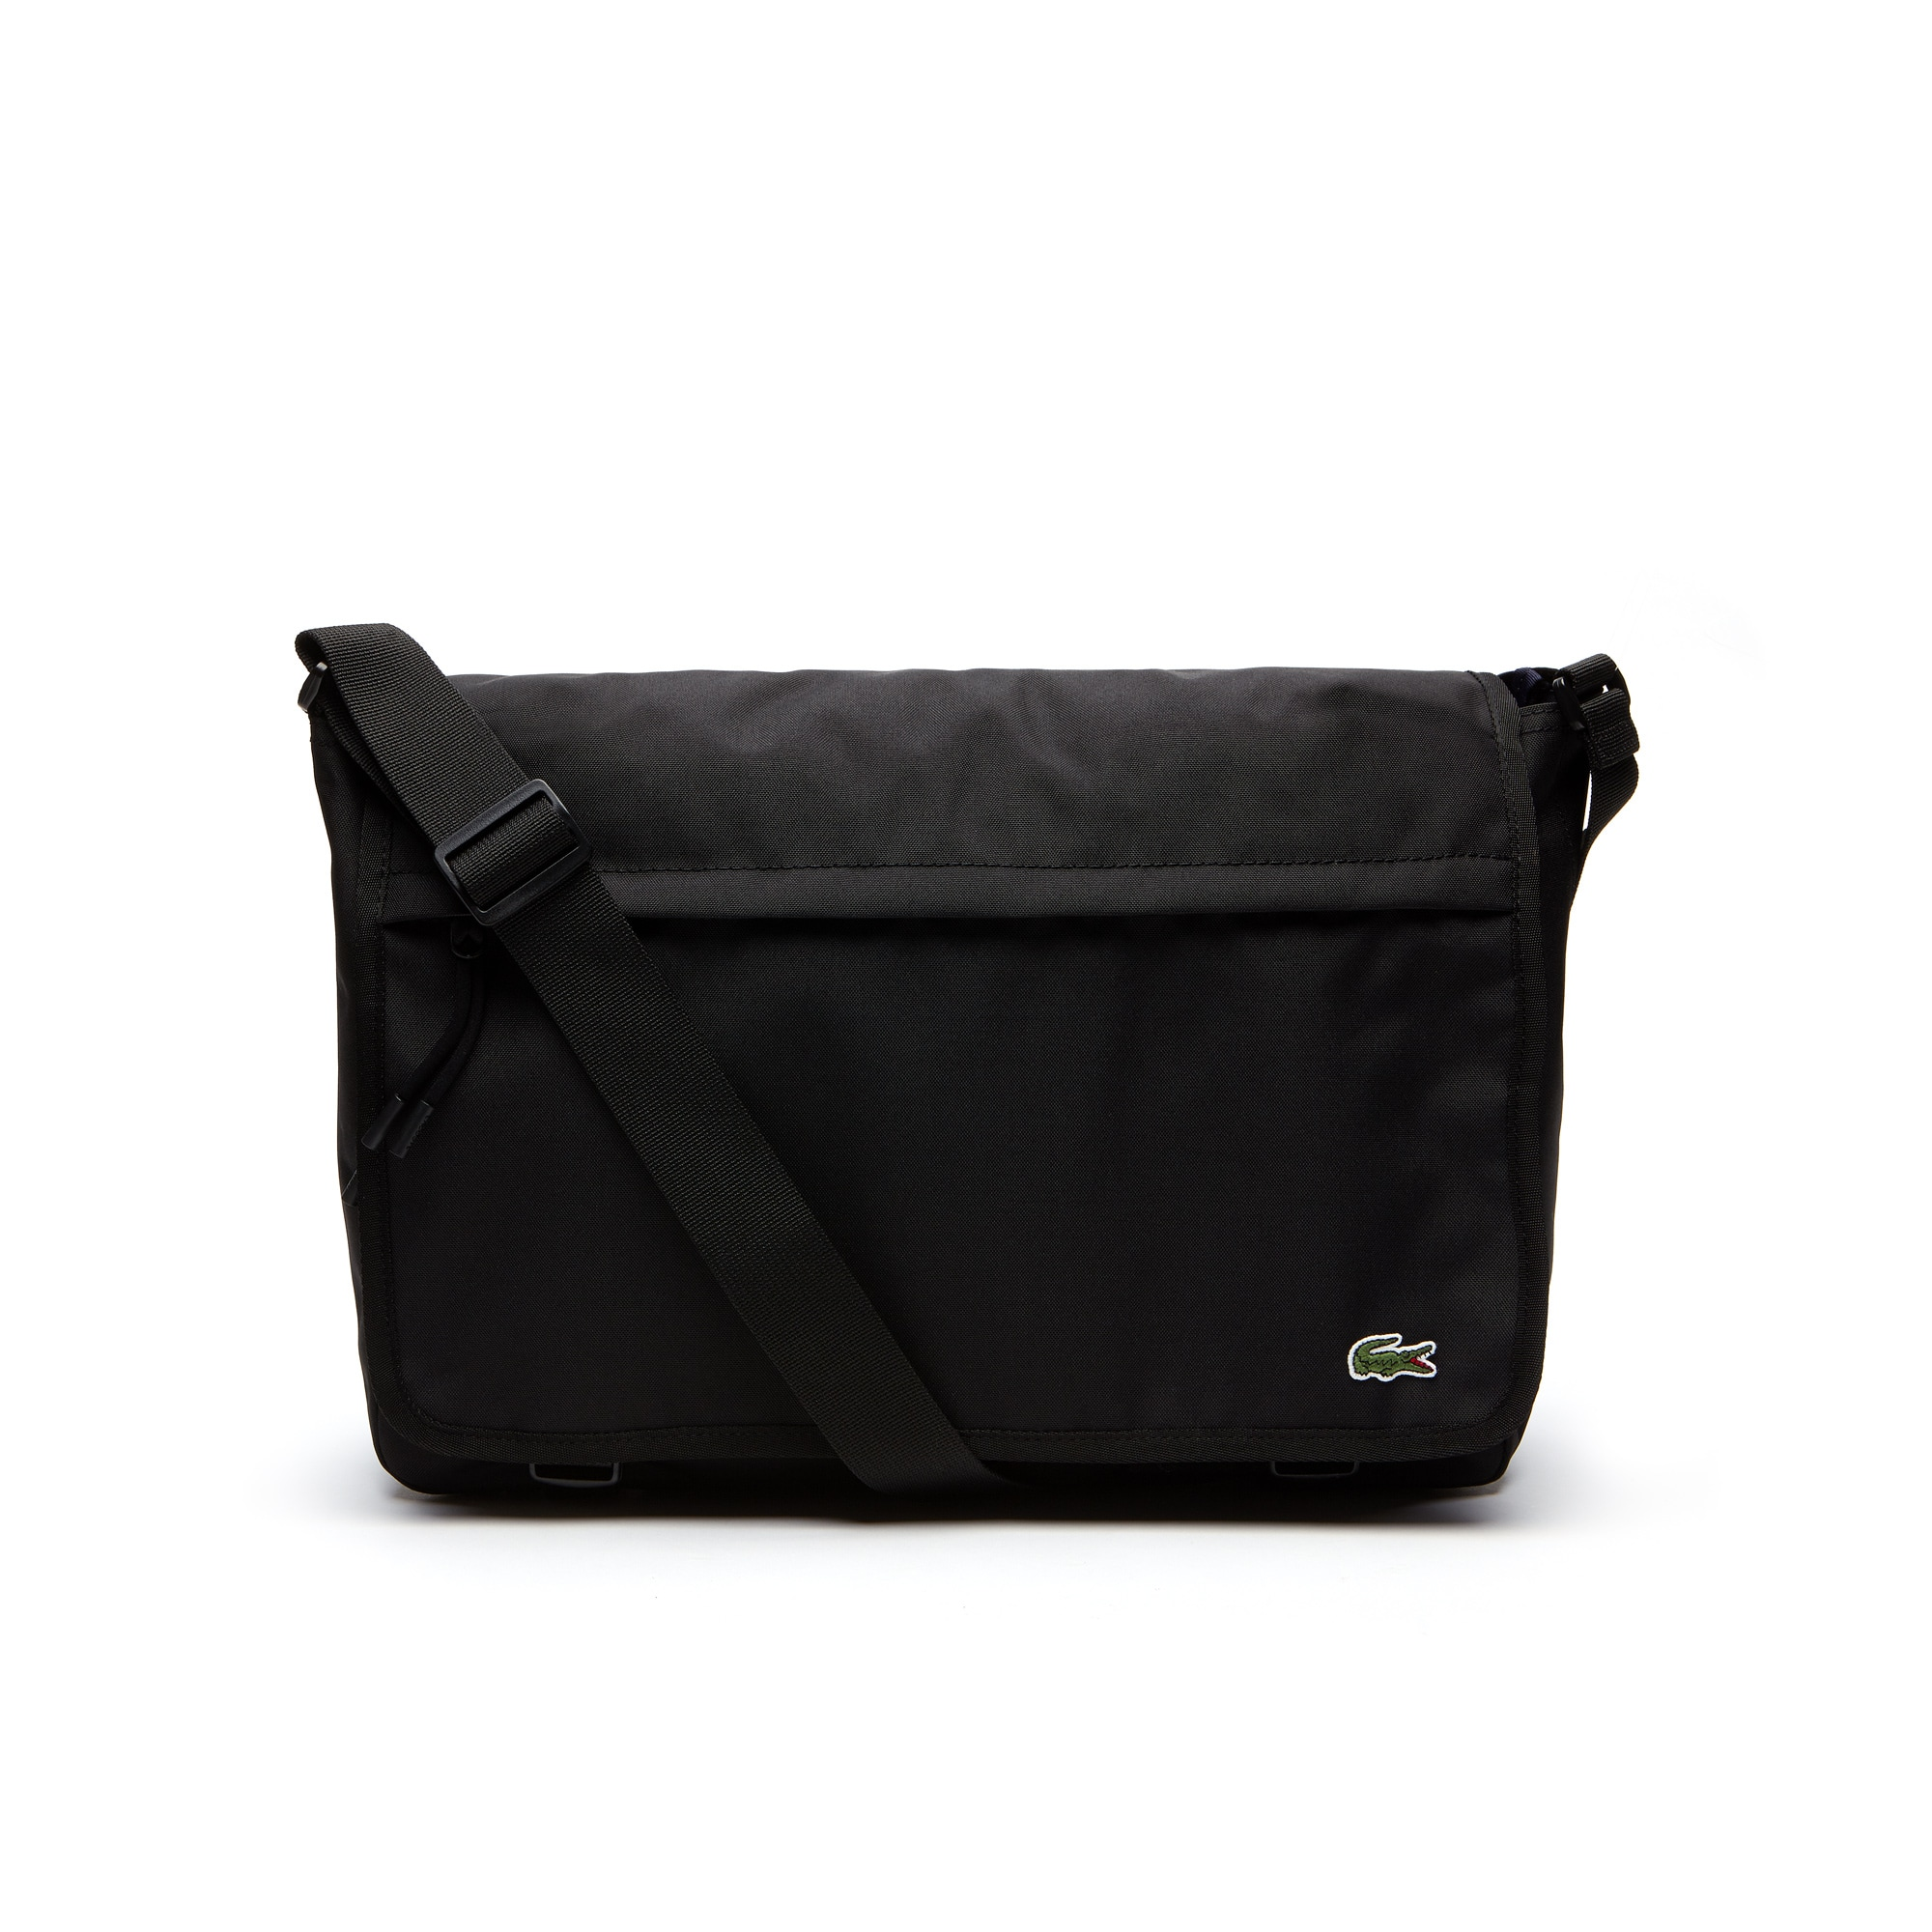 Men's Néocroc Monochrome Canvas Flap Bag